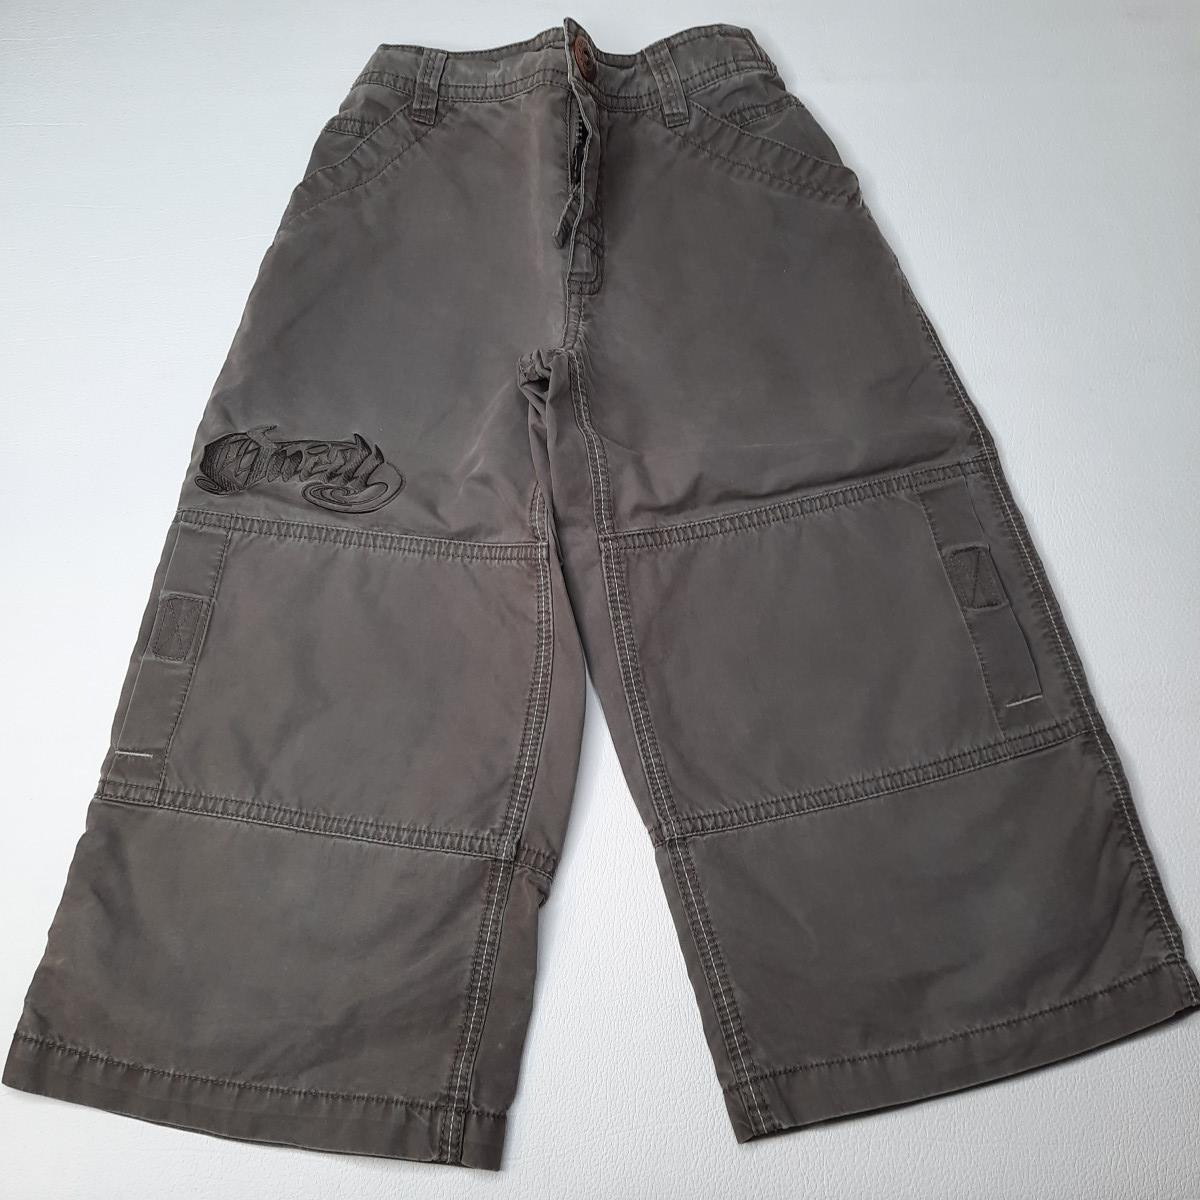 Shorts, Bermudas - photo 40